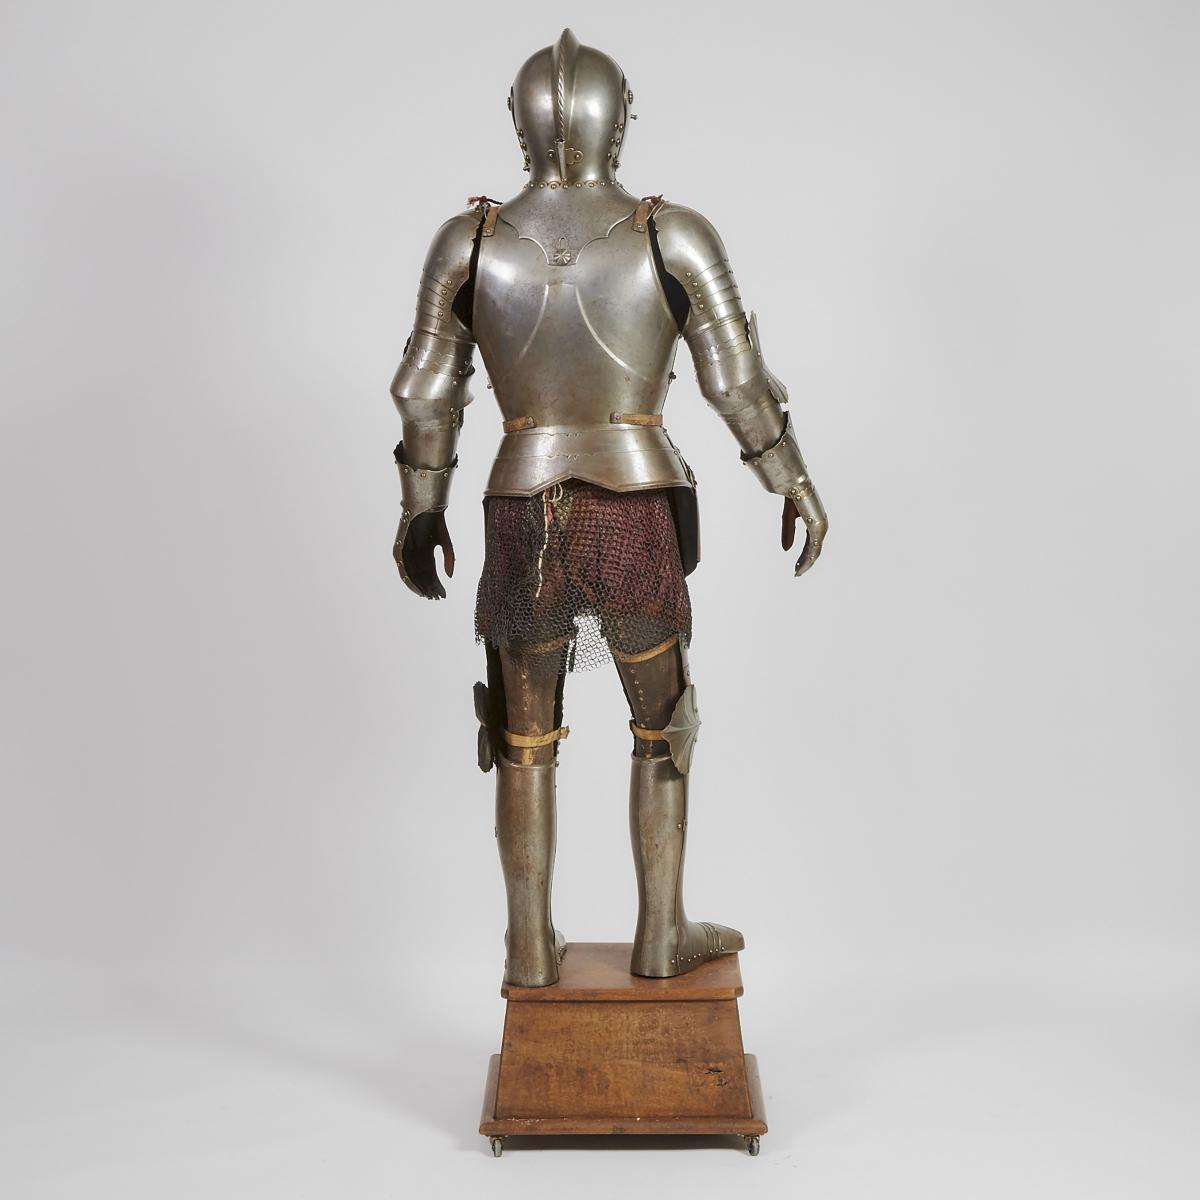 16th Century German Gothic Style Full Field Armour, Vienna, mid 19th century, armour height 68 in — - Image 2 of 2